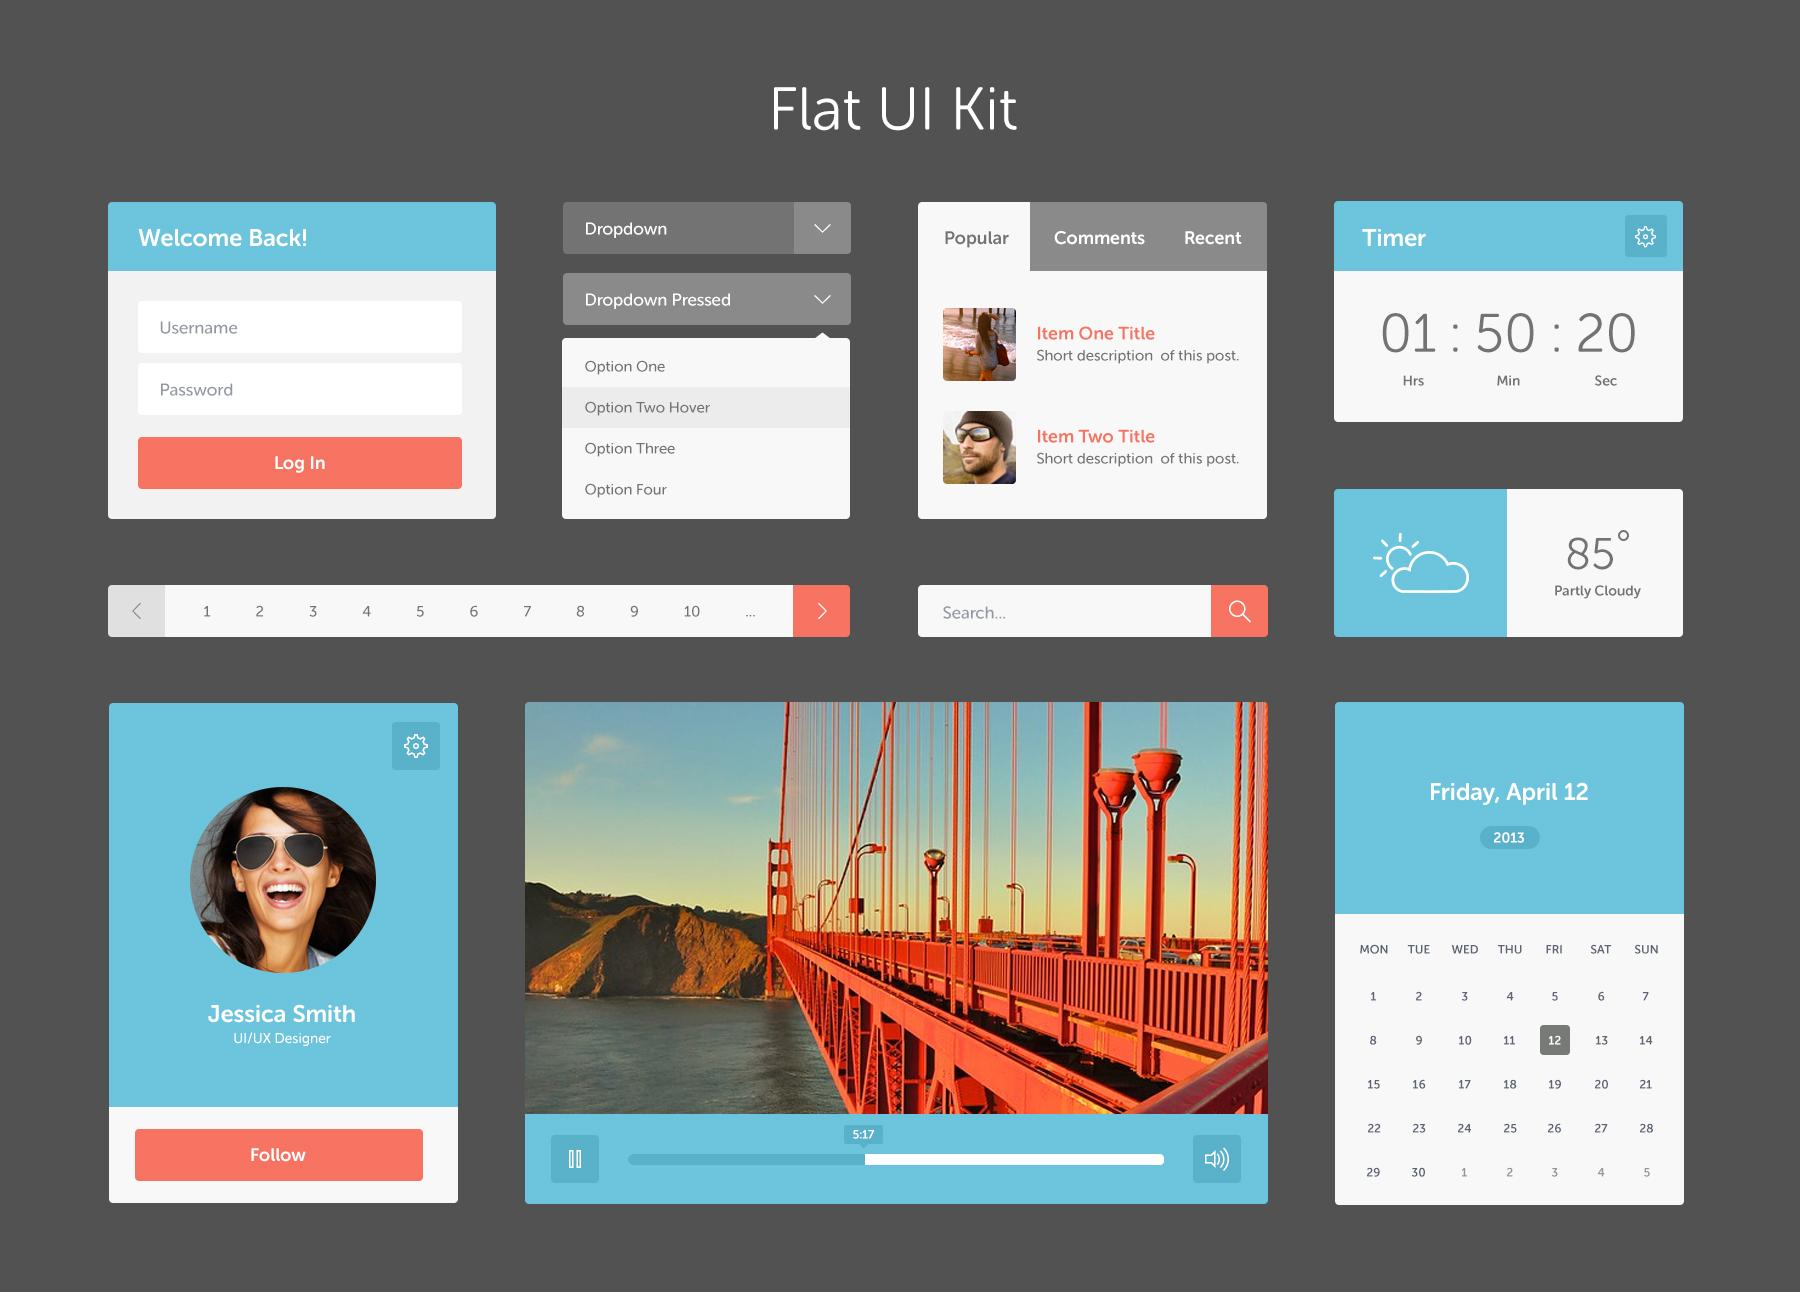 flat-UI-Kit.jpg by Megan Fox